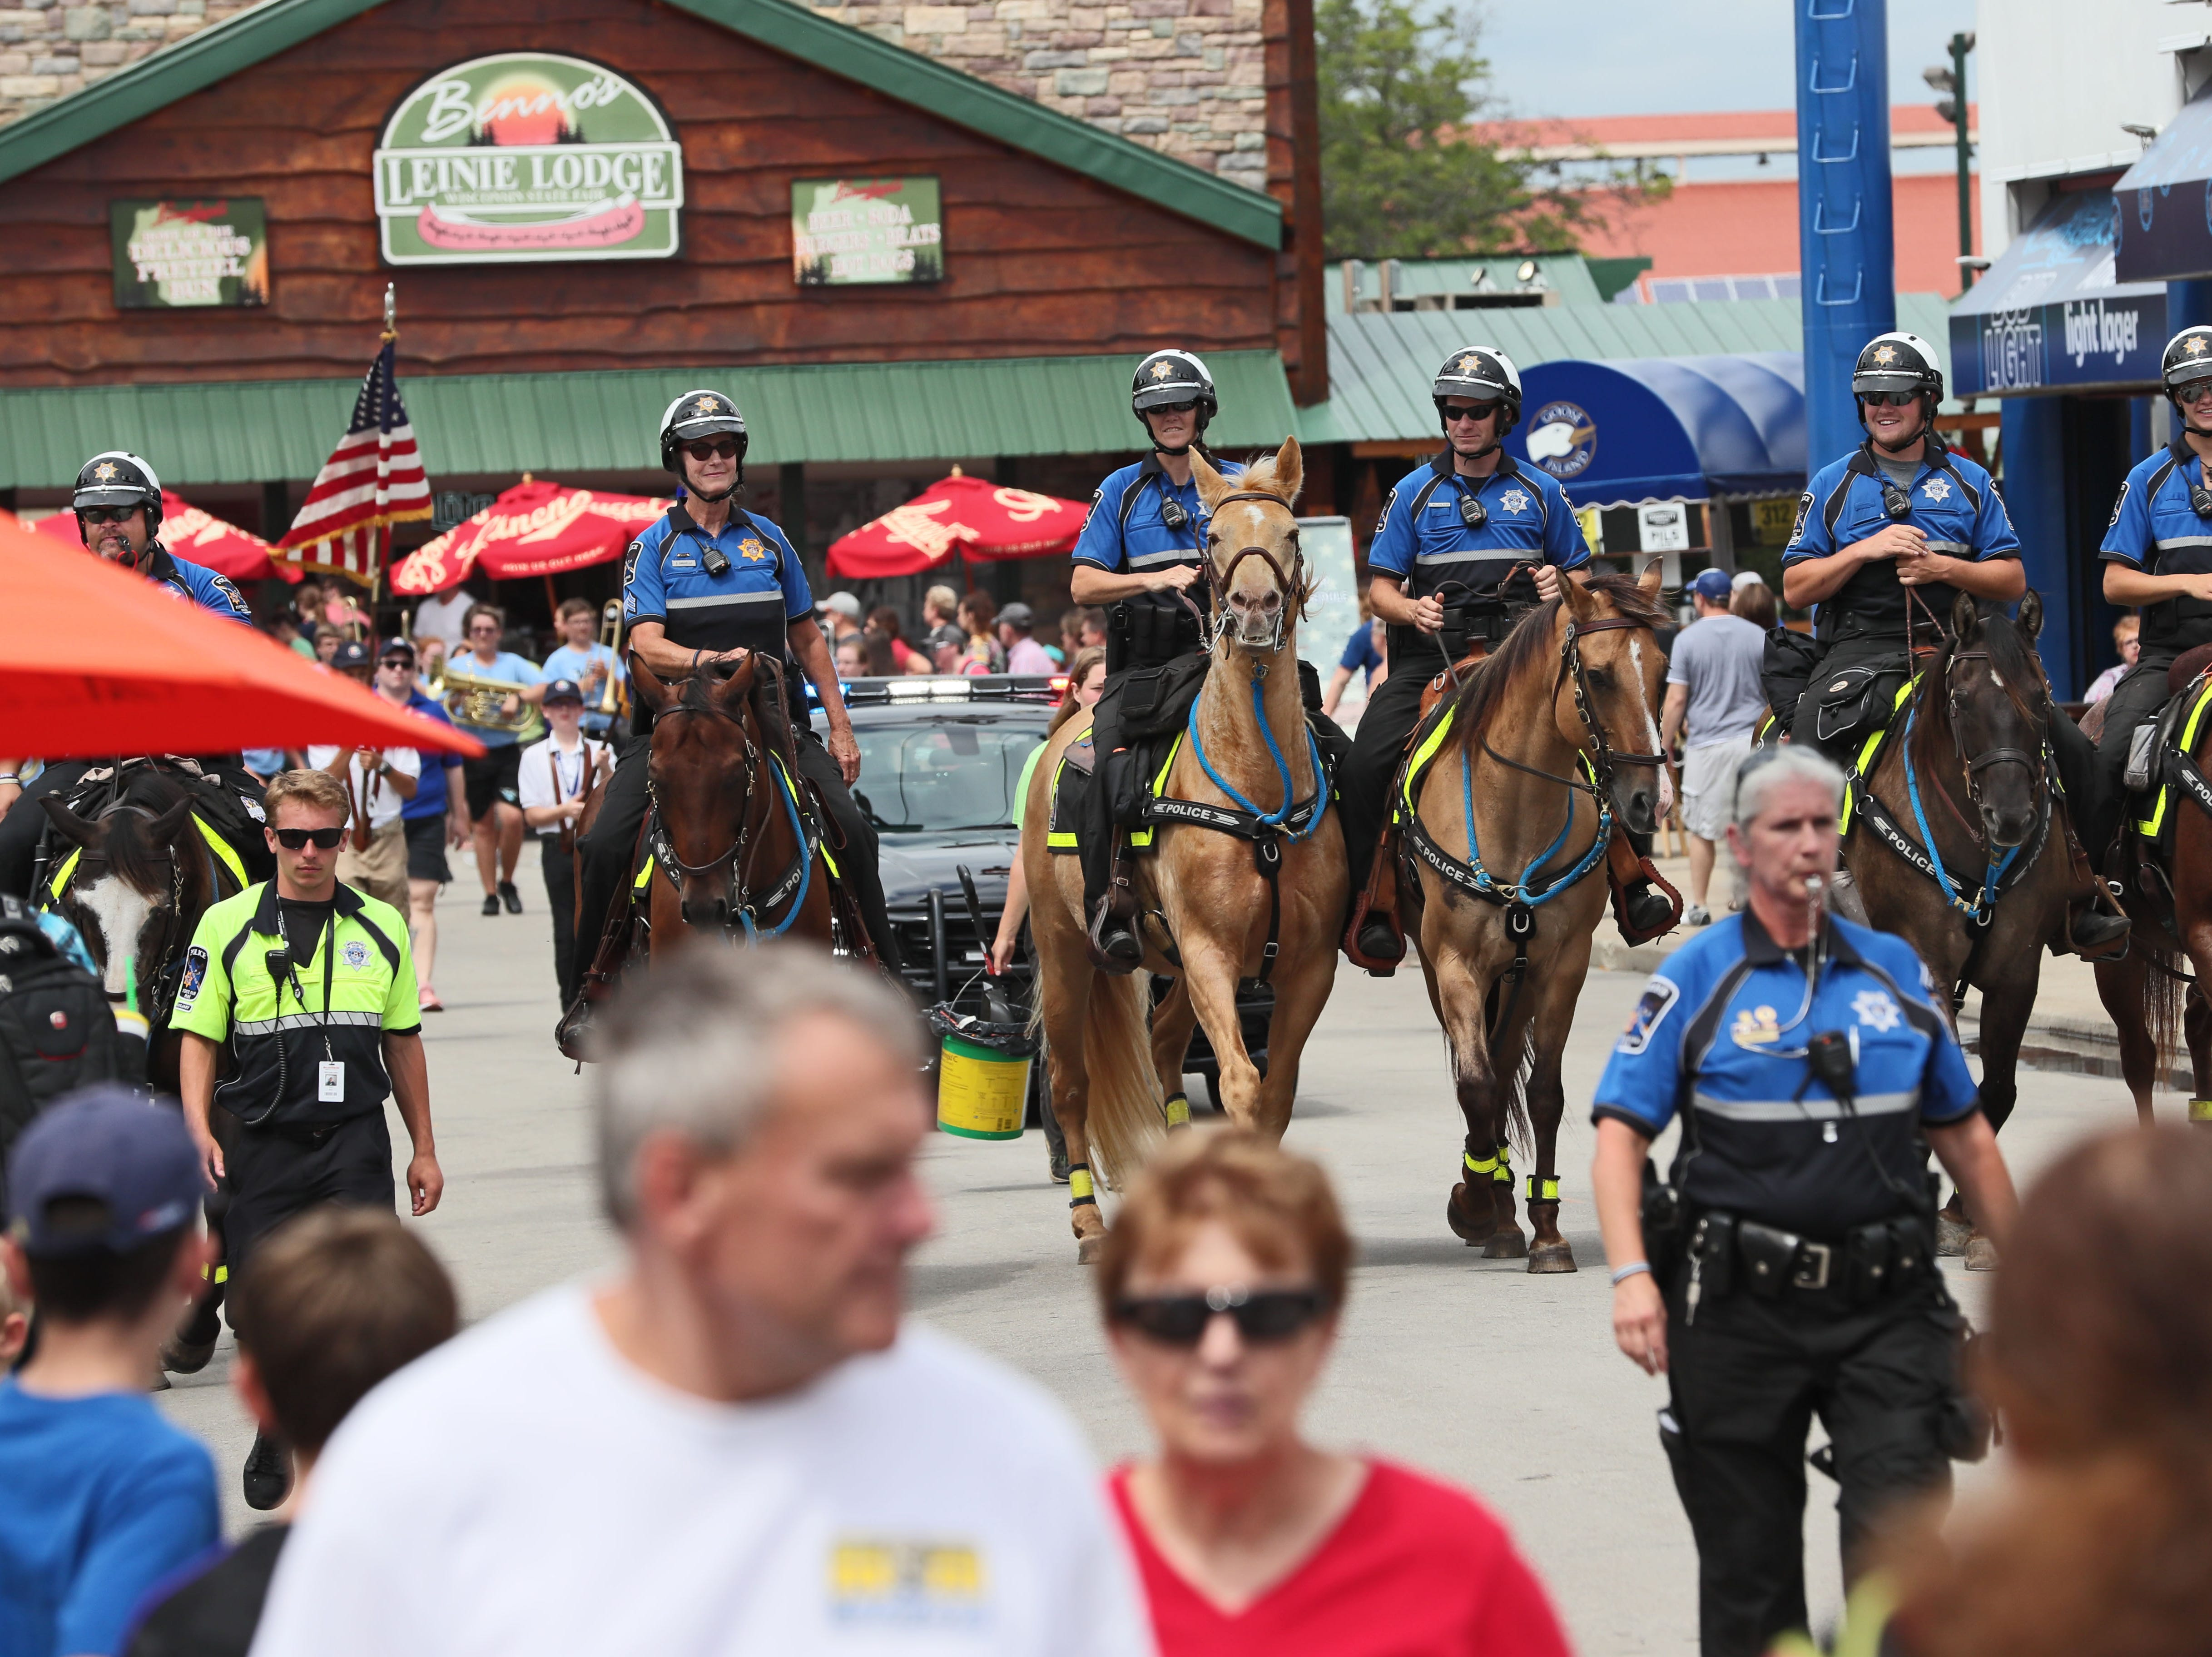 Wisconsin State Fair's mounted police patrol leads the daily parade. The mounted patrol is celebrating 50 years of service at the fair.